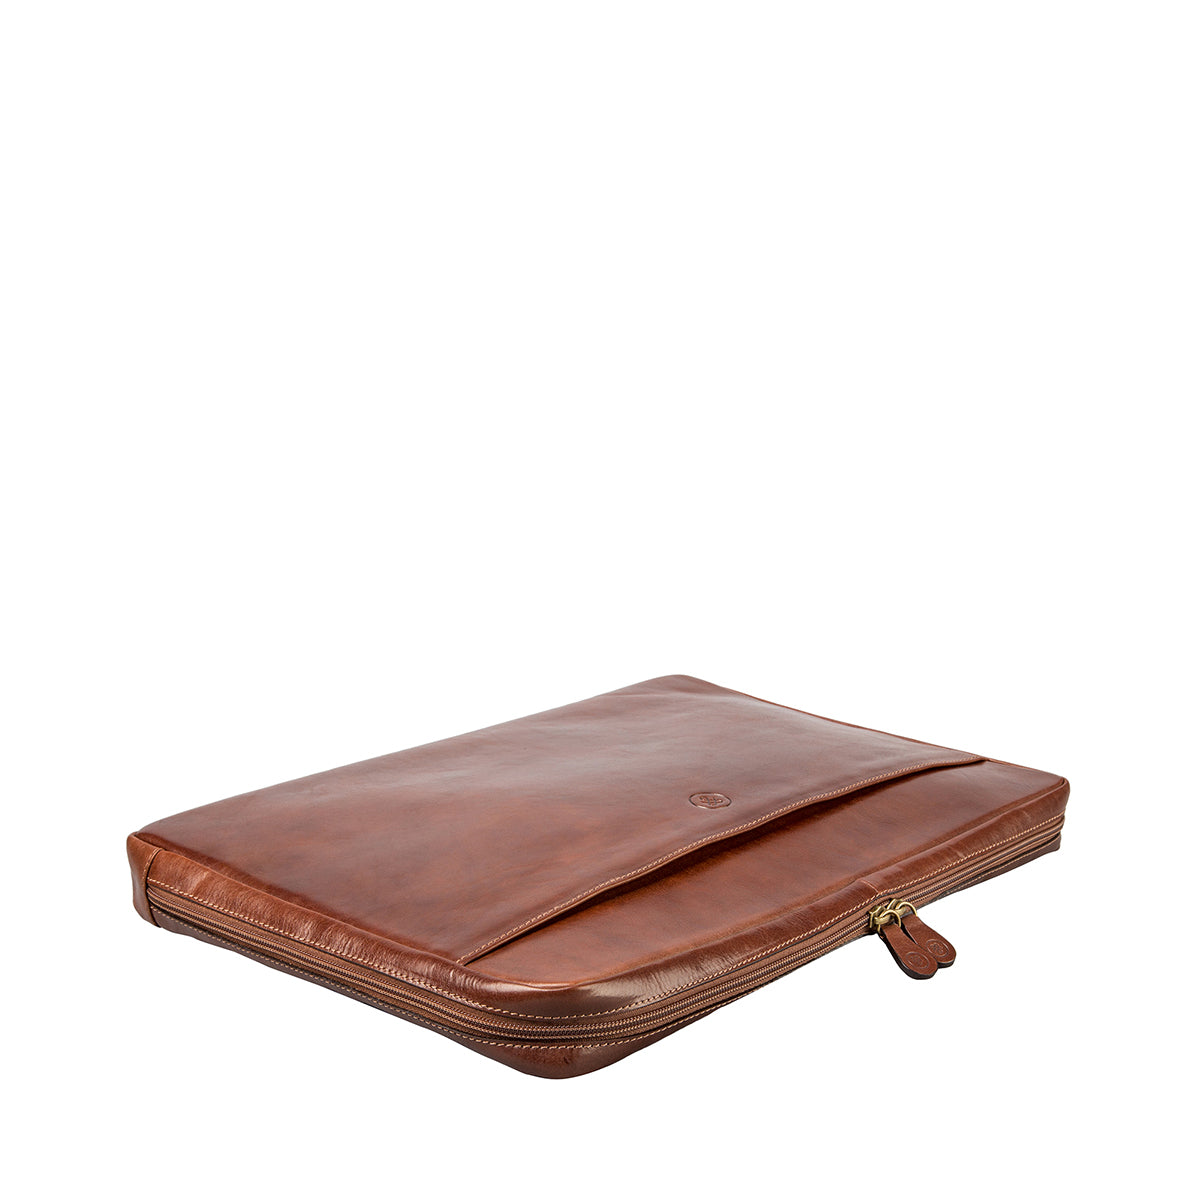 Image 4 of the 'Davoli' 17 Inch Chestnut Veg-Tanned Leather Laptop Bag